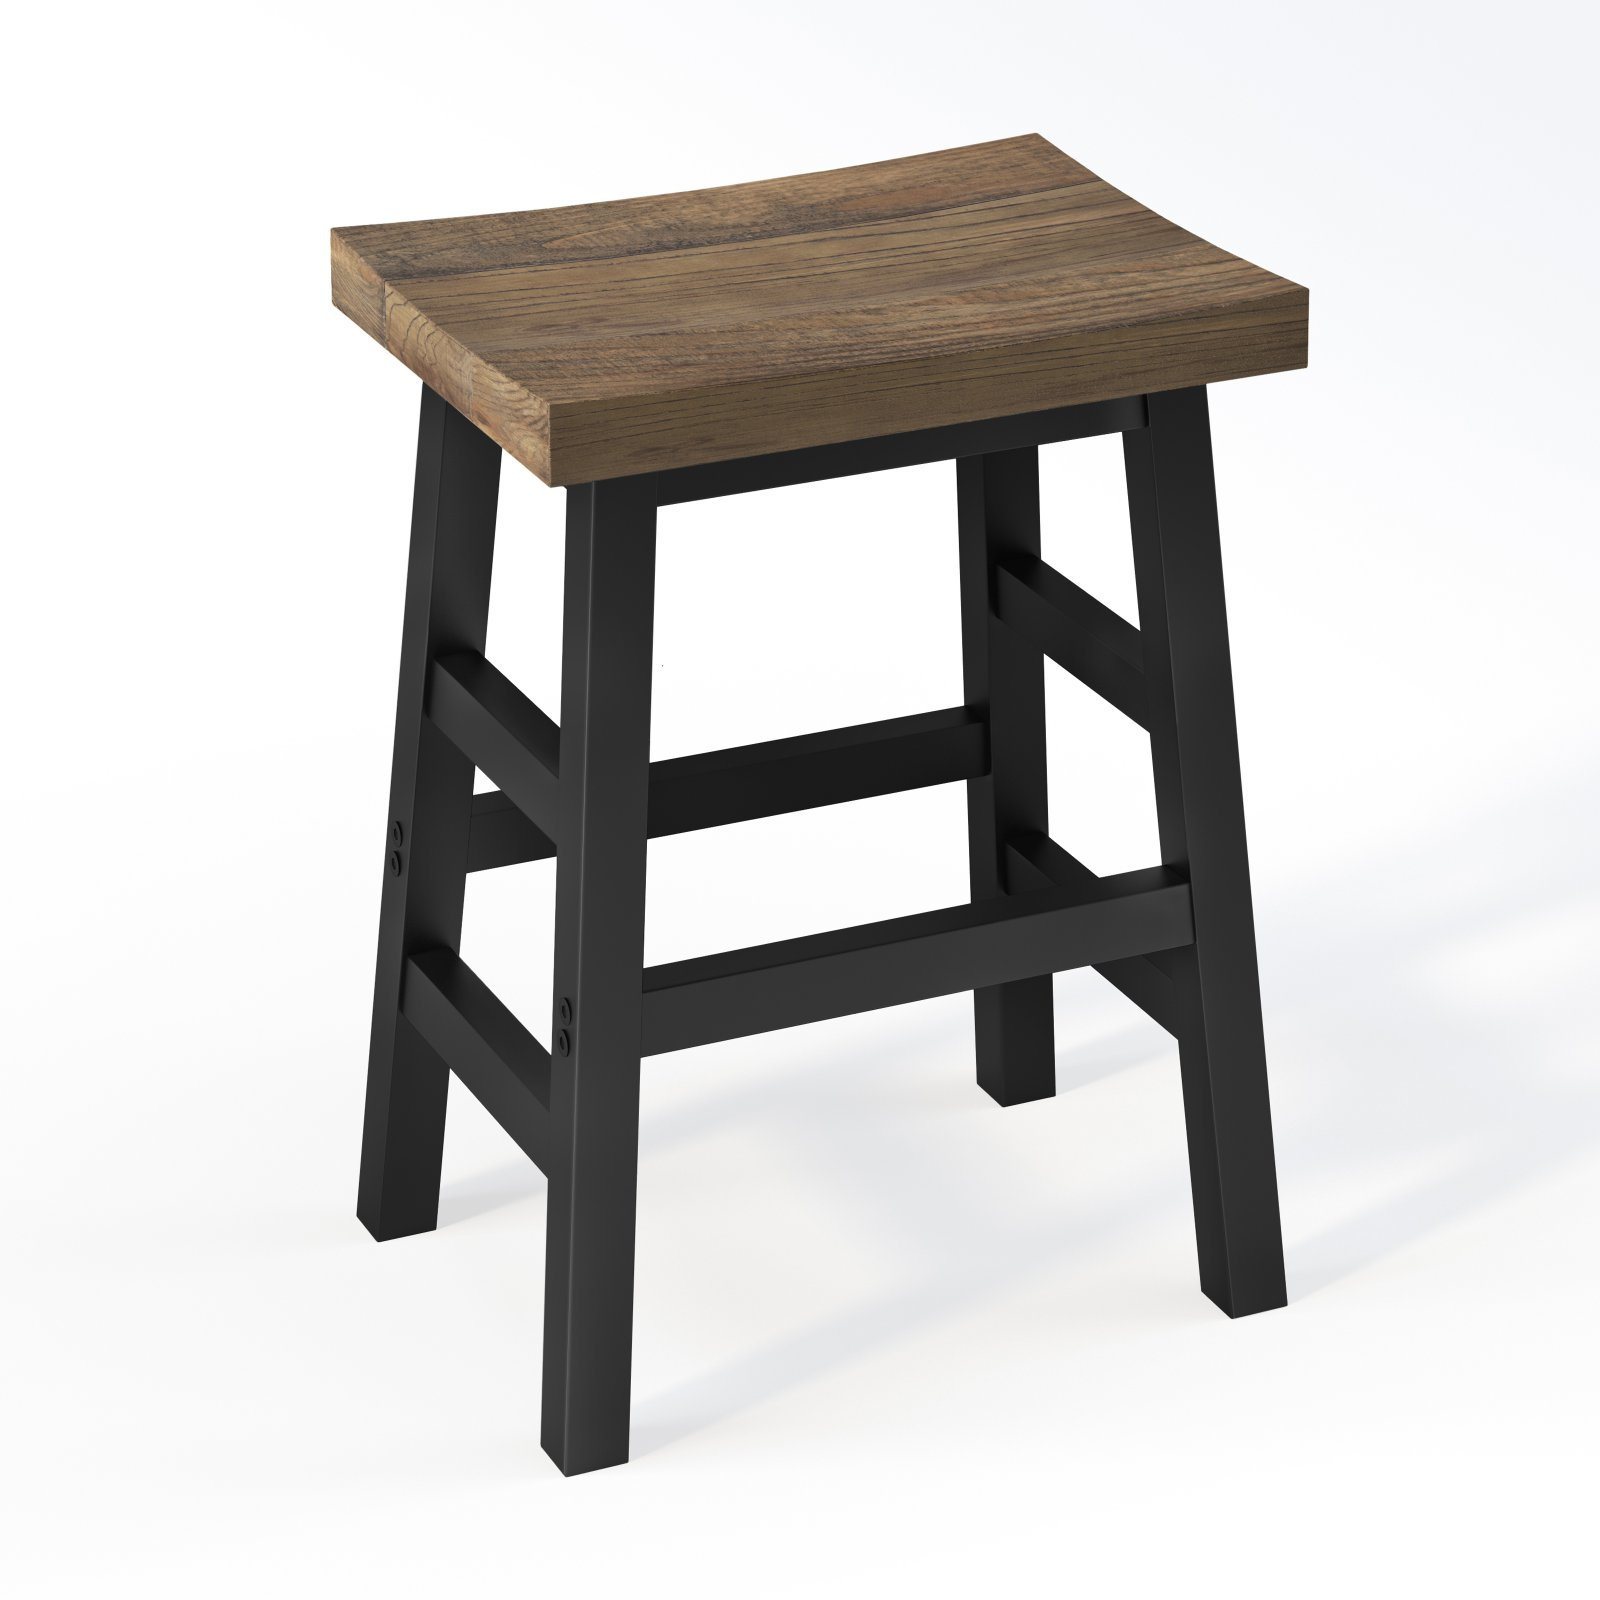 Alaterre Pomona Reclaimed Wood 26 Counter Stool With Metal Legs